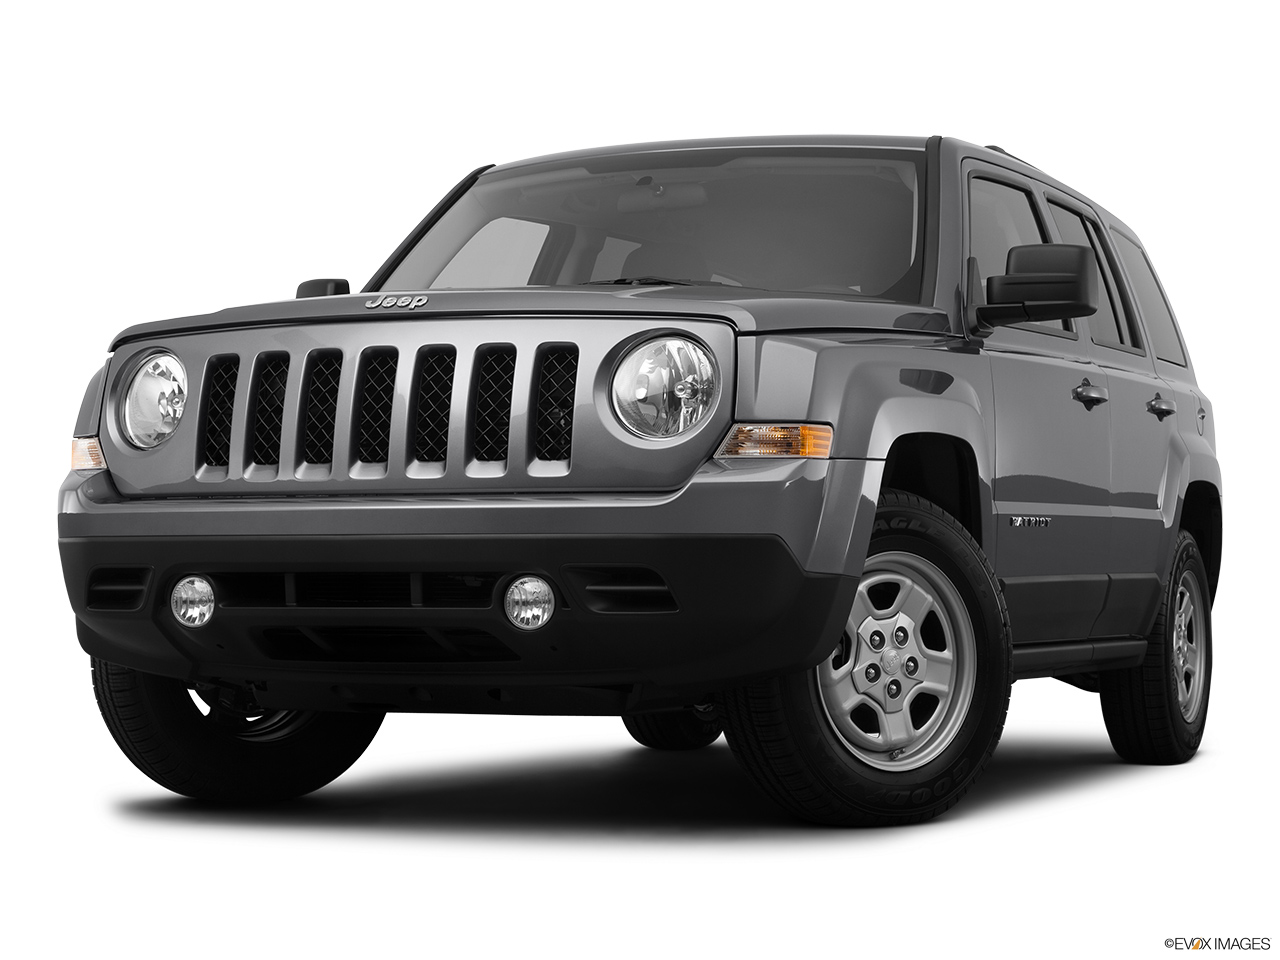 2012 Jeep Patriot Sport Front angle view, low wide perspective.